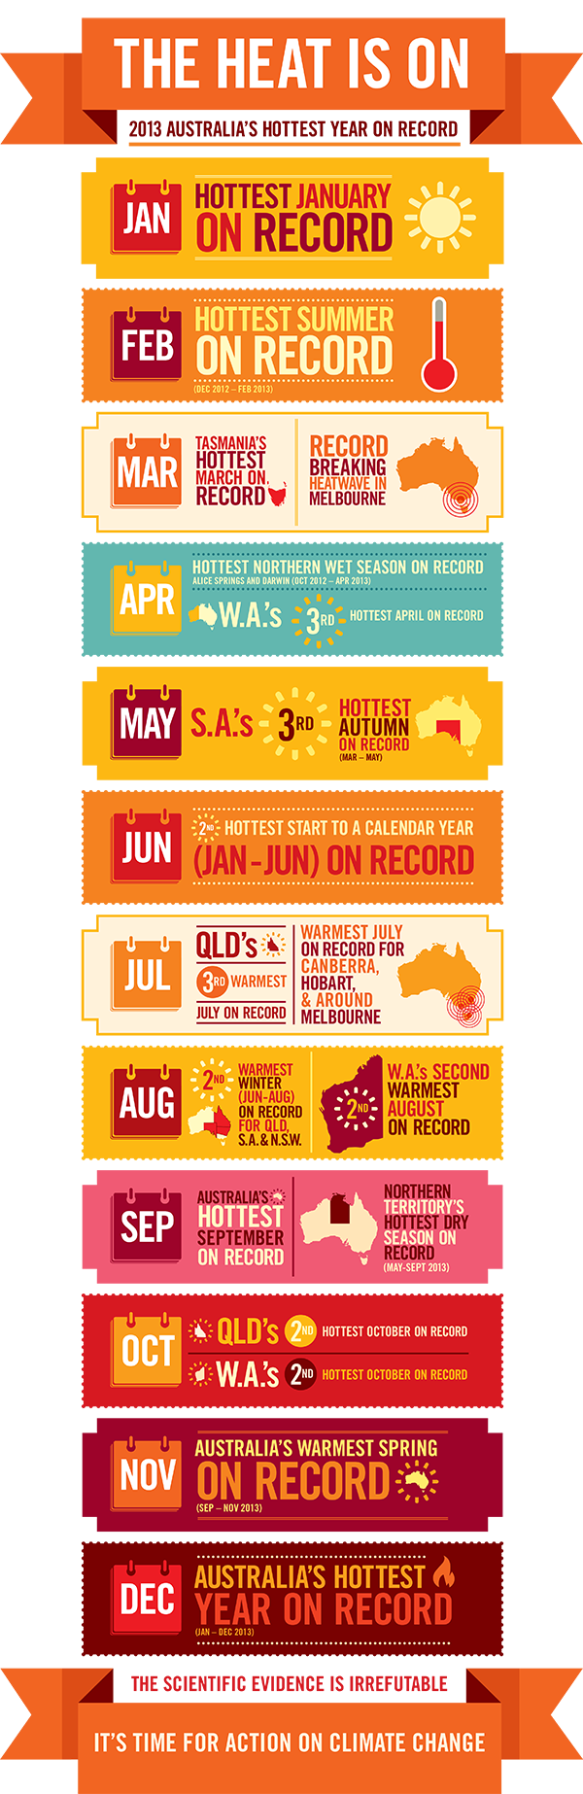 Infographic by the Climate Council.